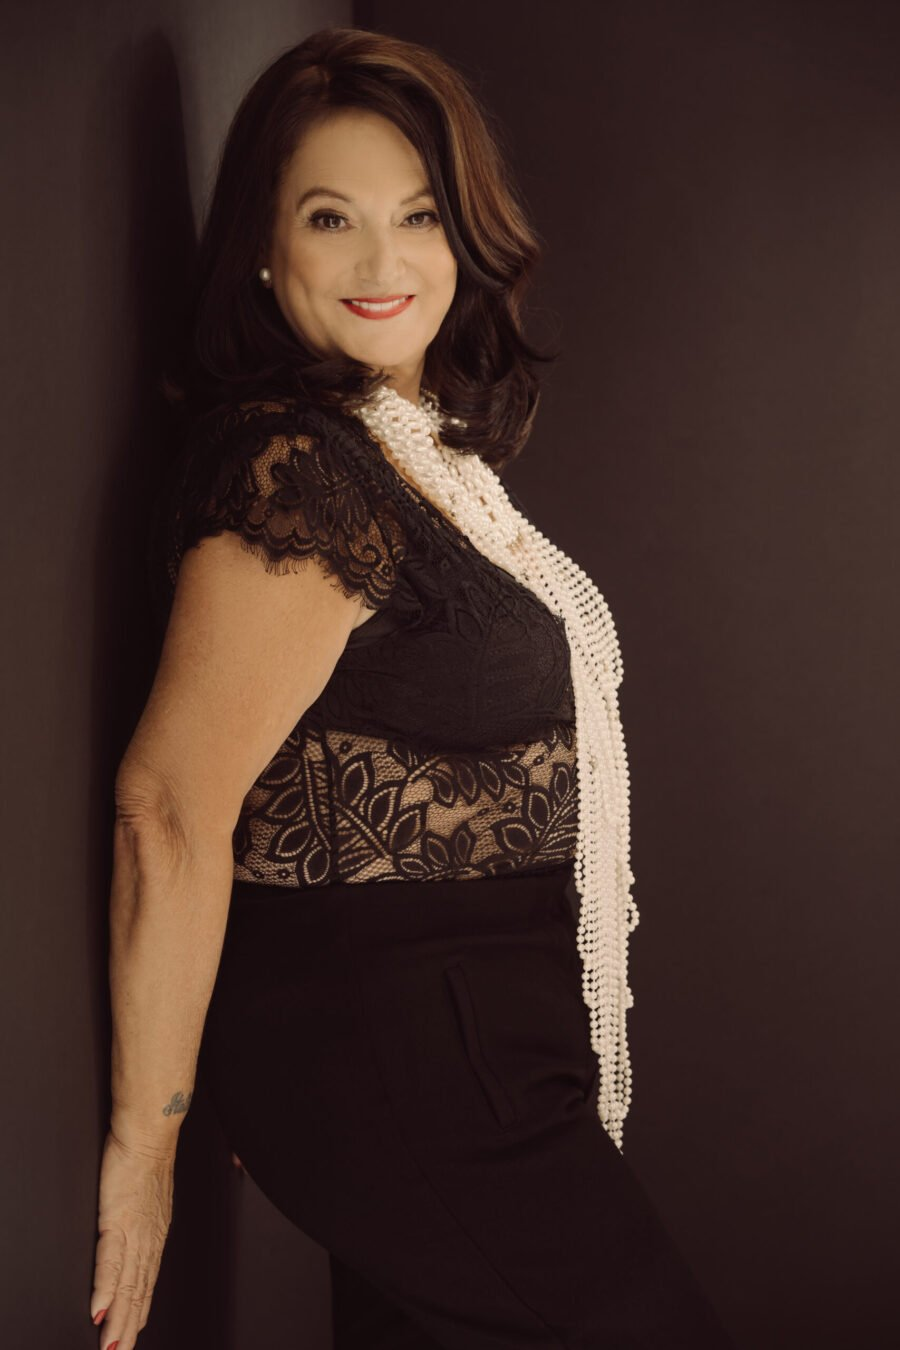 glamour photoshoot of a retired national guard in black lace top and pants